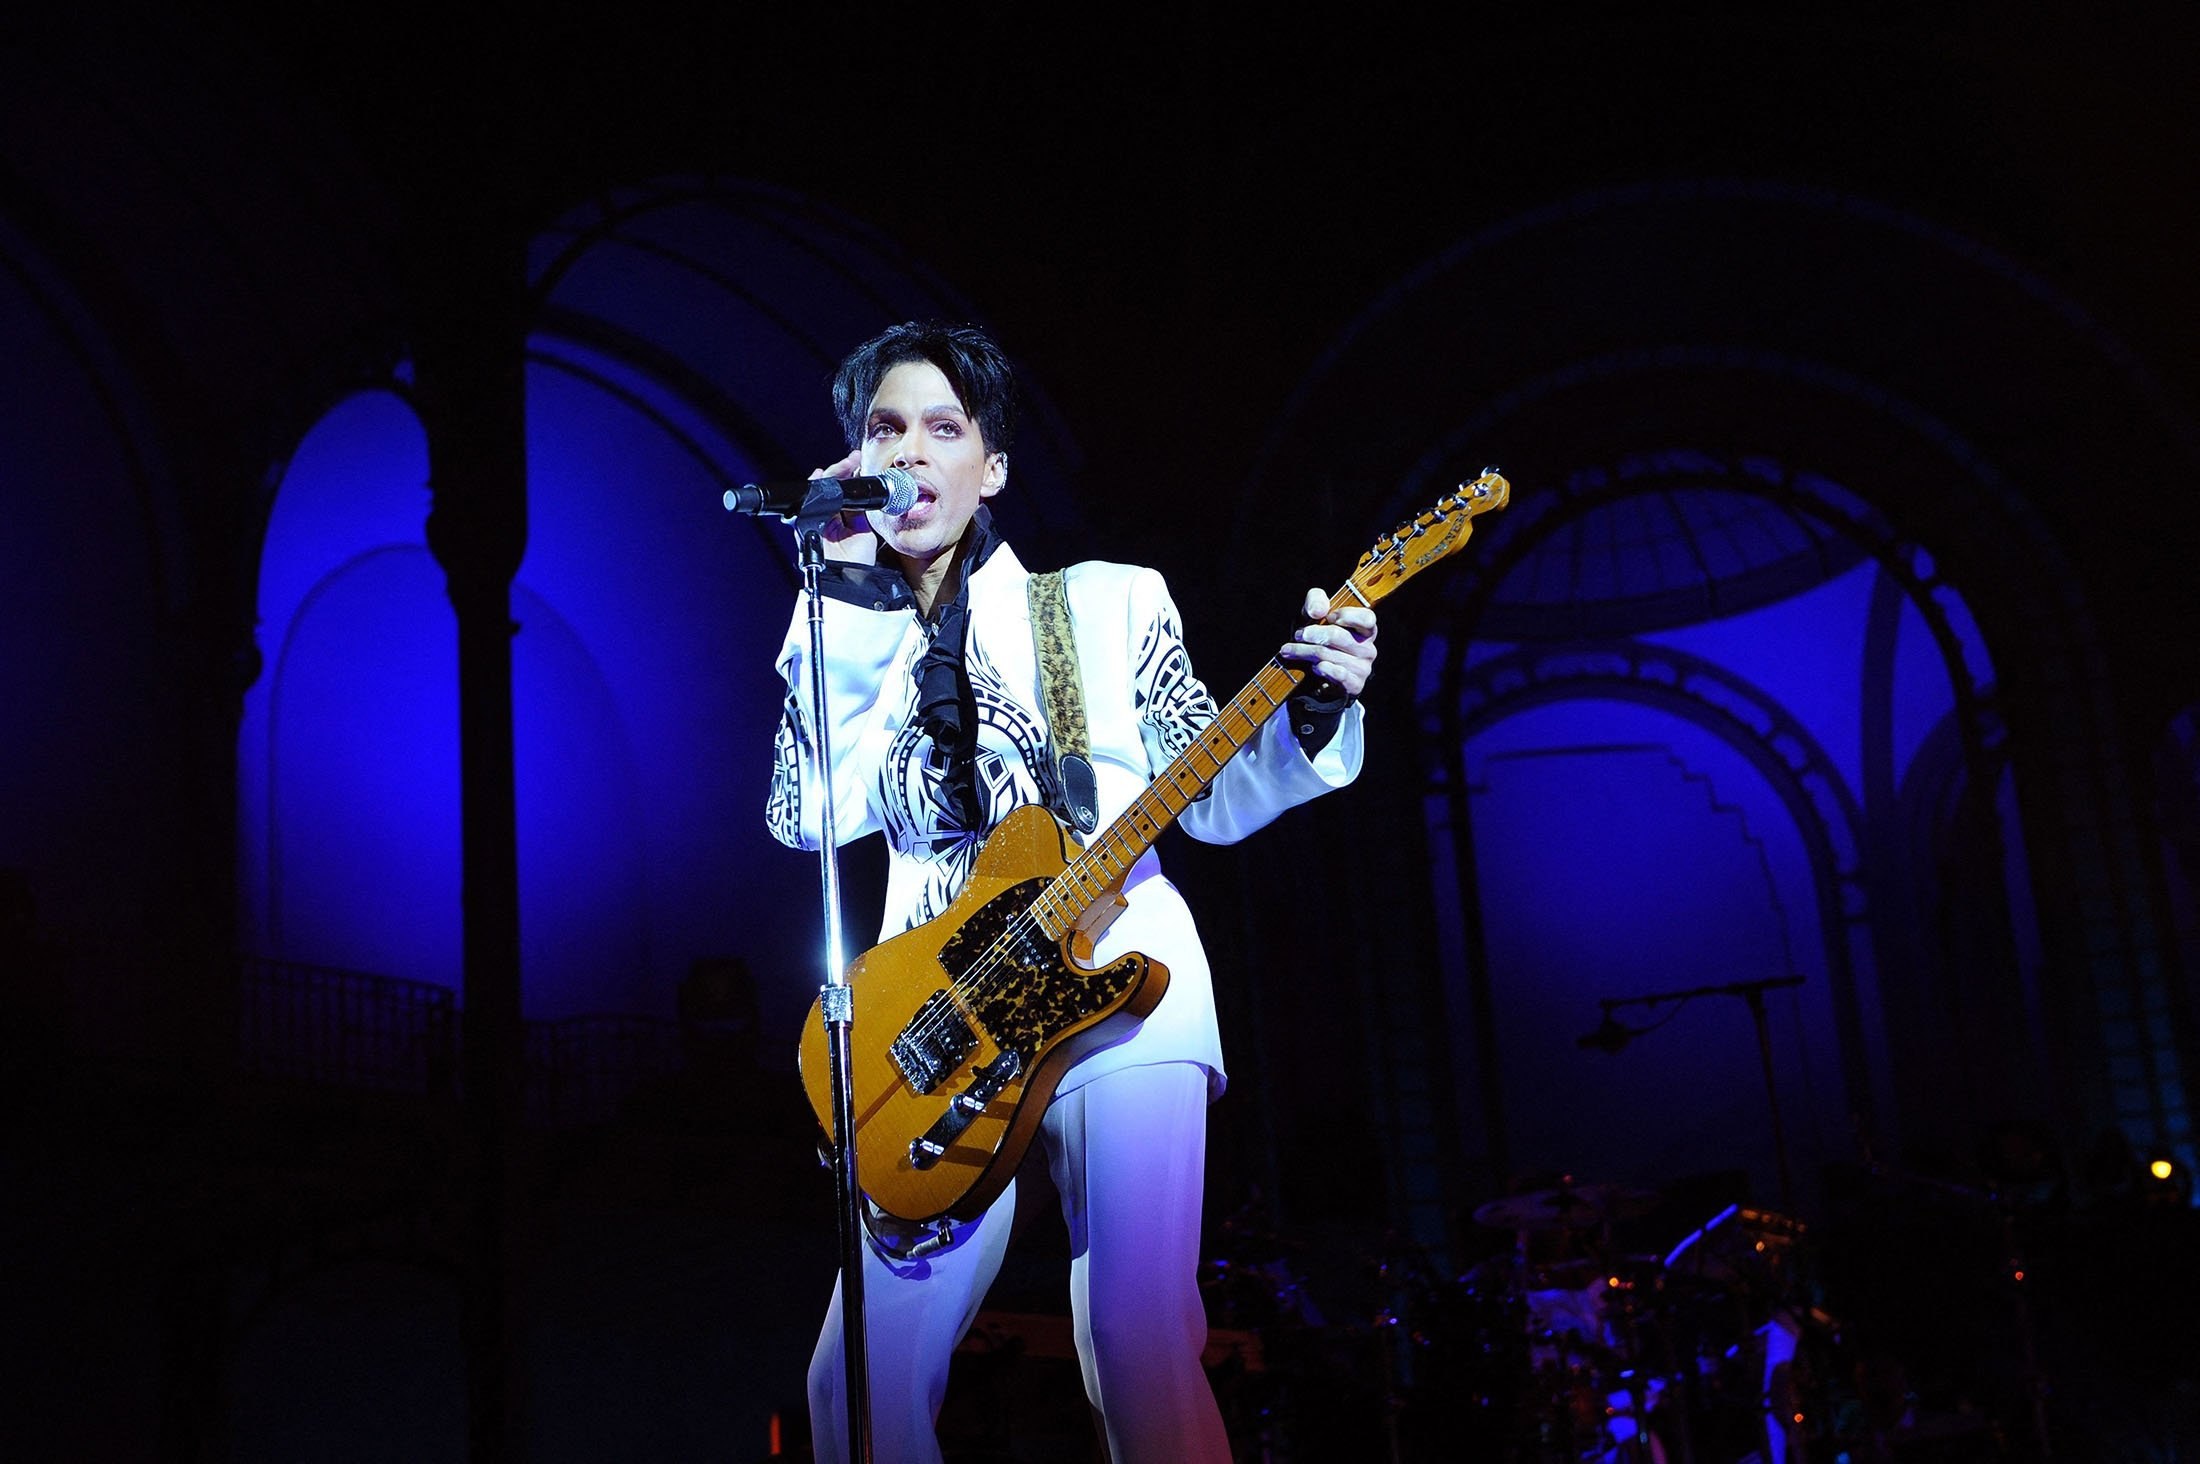 U.S. singer Prince performs at the Grand Palais in Paris, France, Oct. 11, 2009. (AFP Photo)